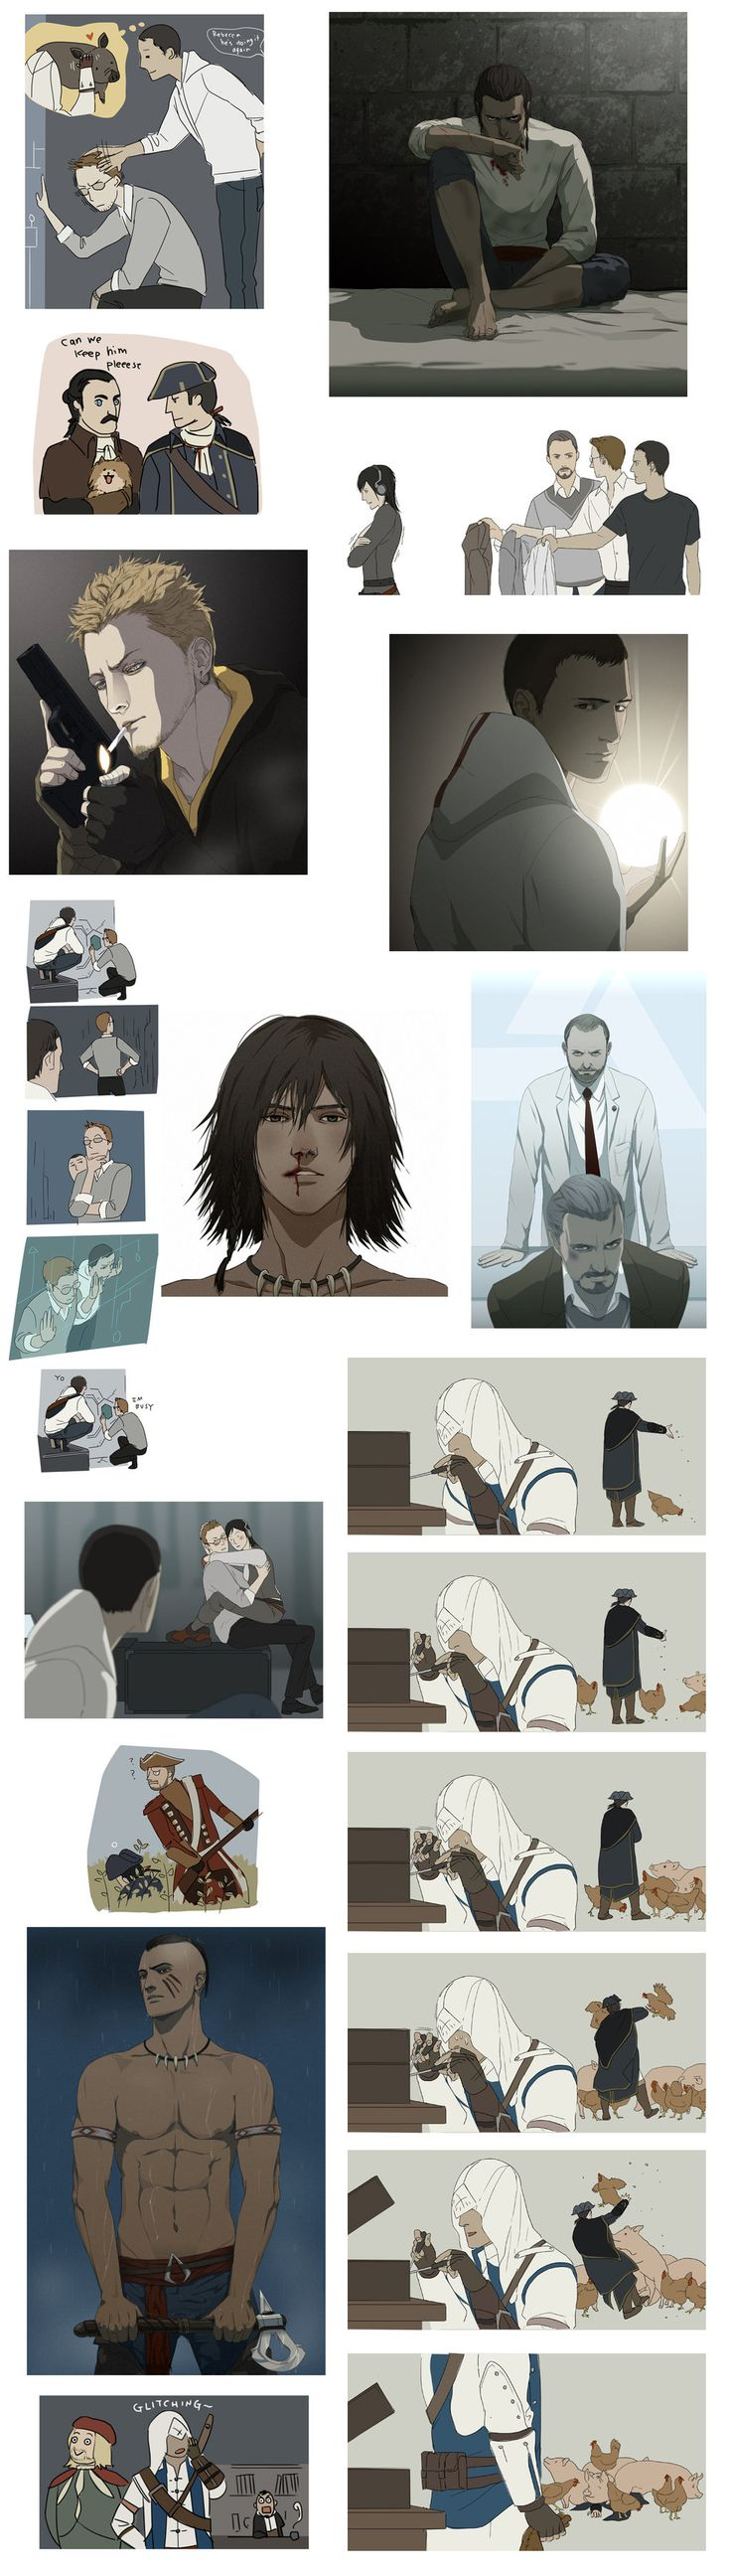 AC3 dump 1 (contains minor spoilers) by *doubleleaf on deviantART